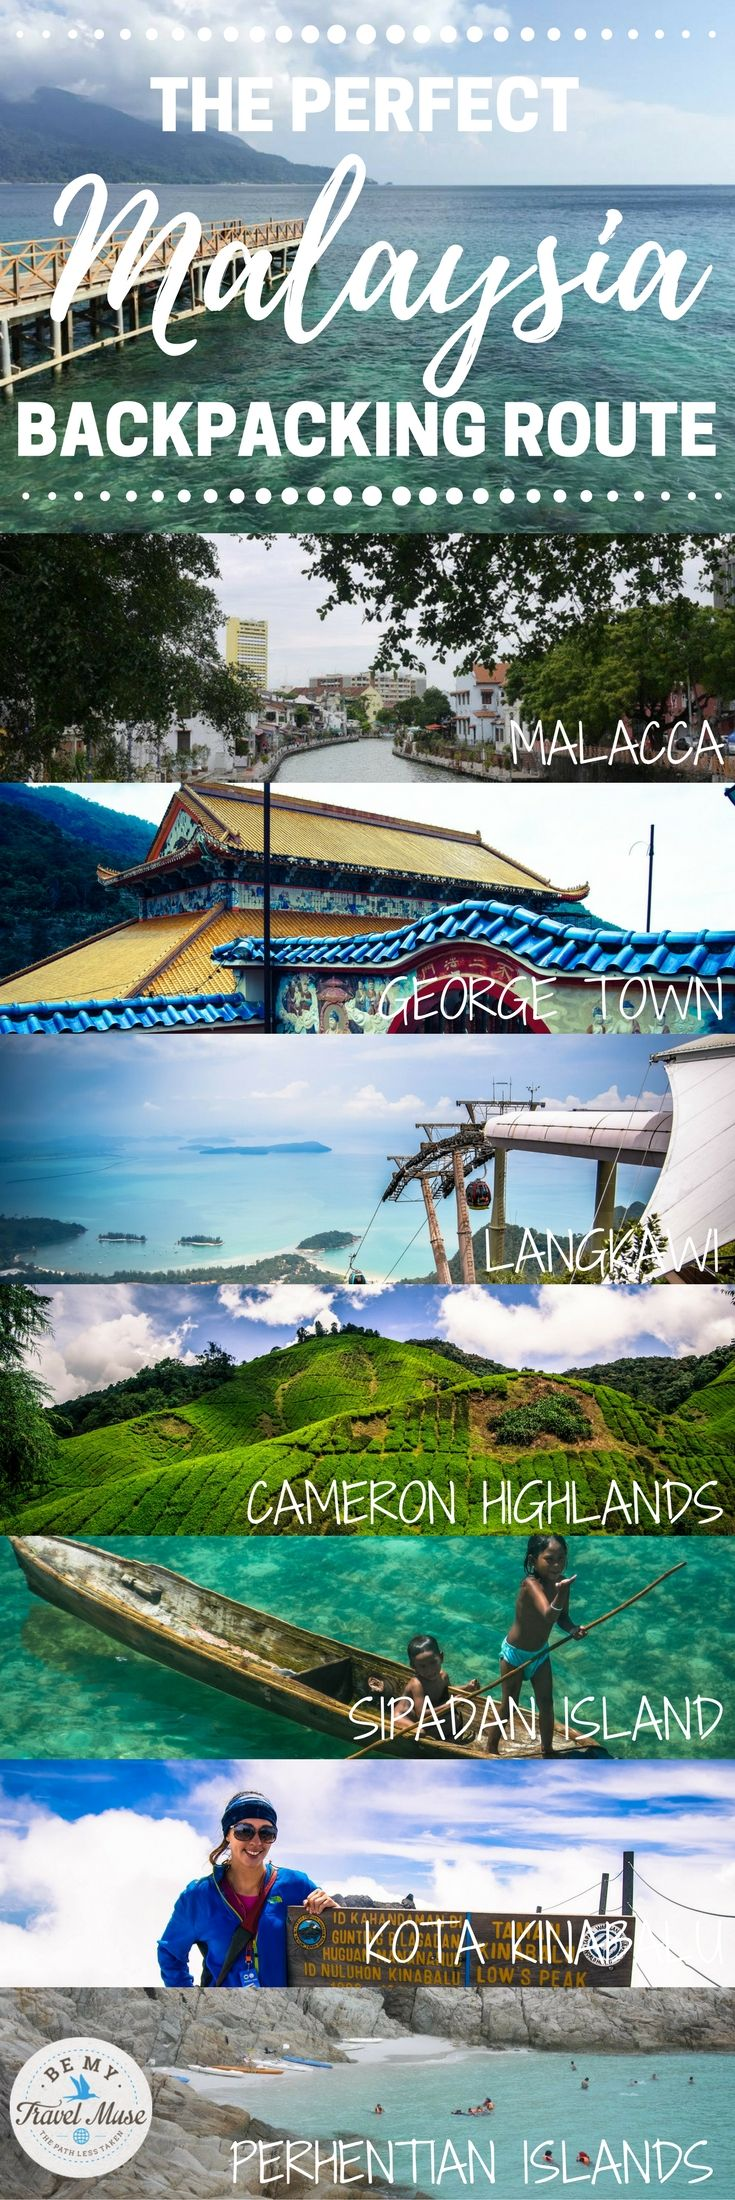 The ultimate guide to backpacking Malaysia, with 17 spots worth checking out (some are well known, some are off the beaten path!), ranging from the cosmopolitan cities, beaches, jungles, and national parks. Packing, budget, accommodation tips included | Be My Travel Muse | Malaysia travel tips | Malaysia itinerary | Backpacking Malaysia | #Malaysia